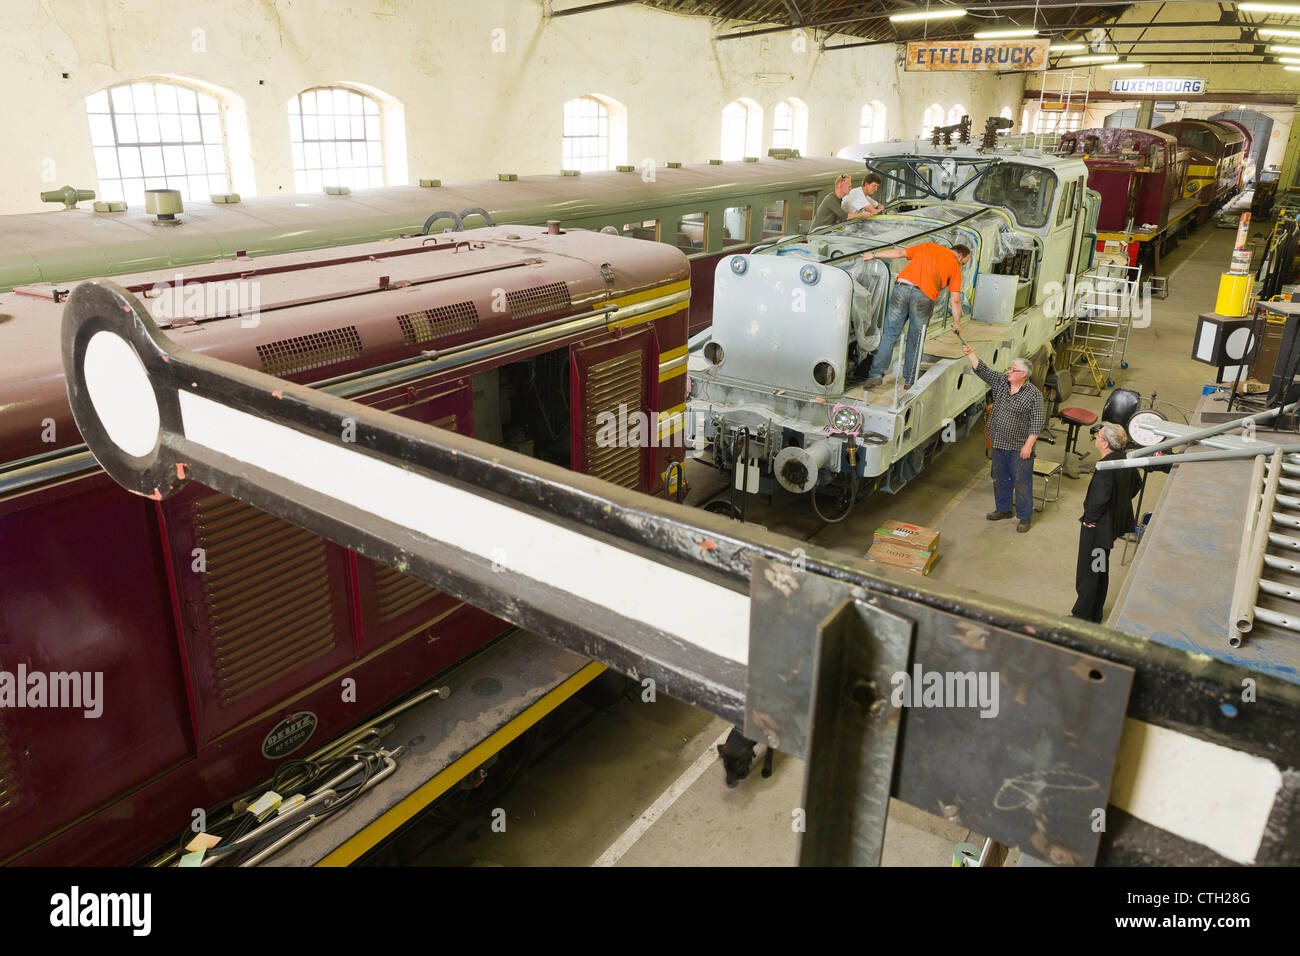 Railway Repair Shop of the 1604 Classics club.Diesel locomotive 450 and a BB3608 getting readied for painting. - Stock Image